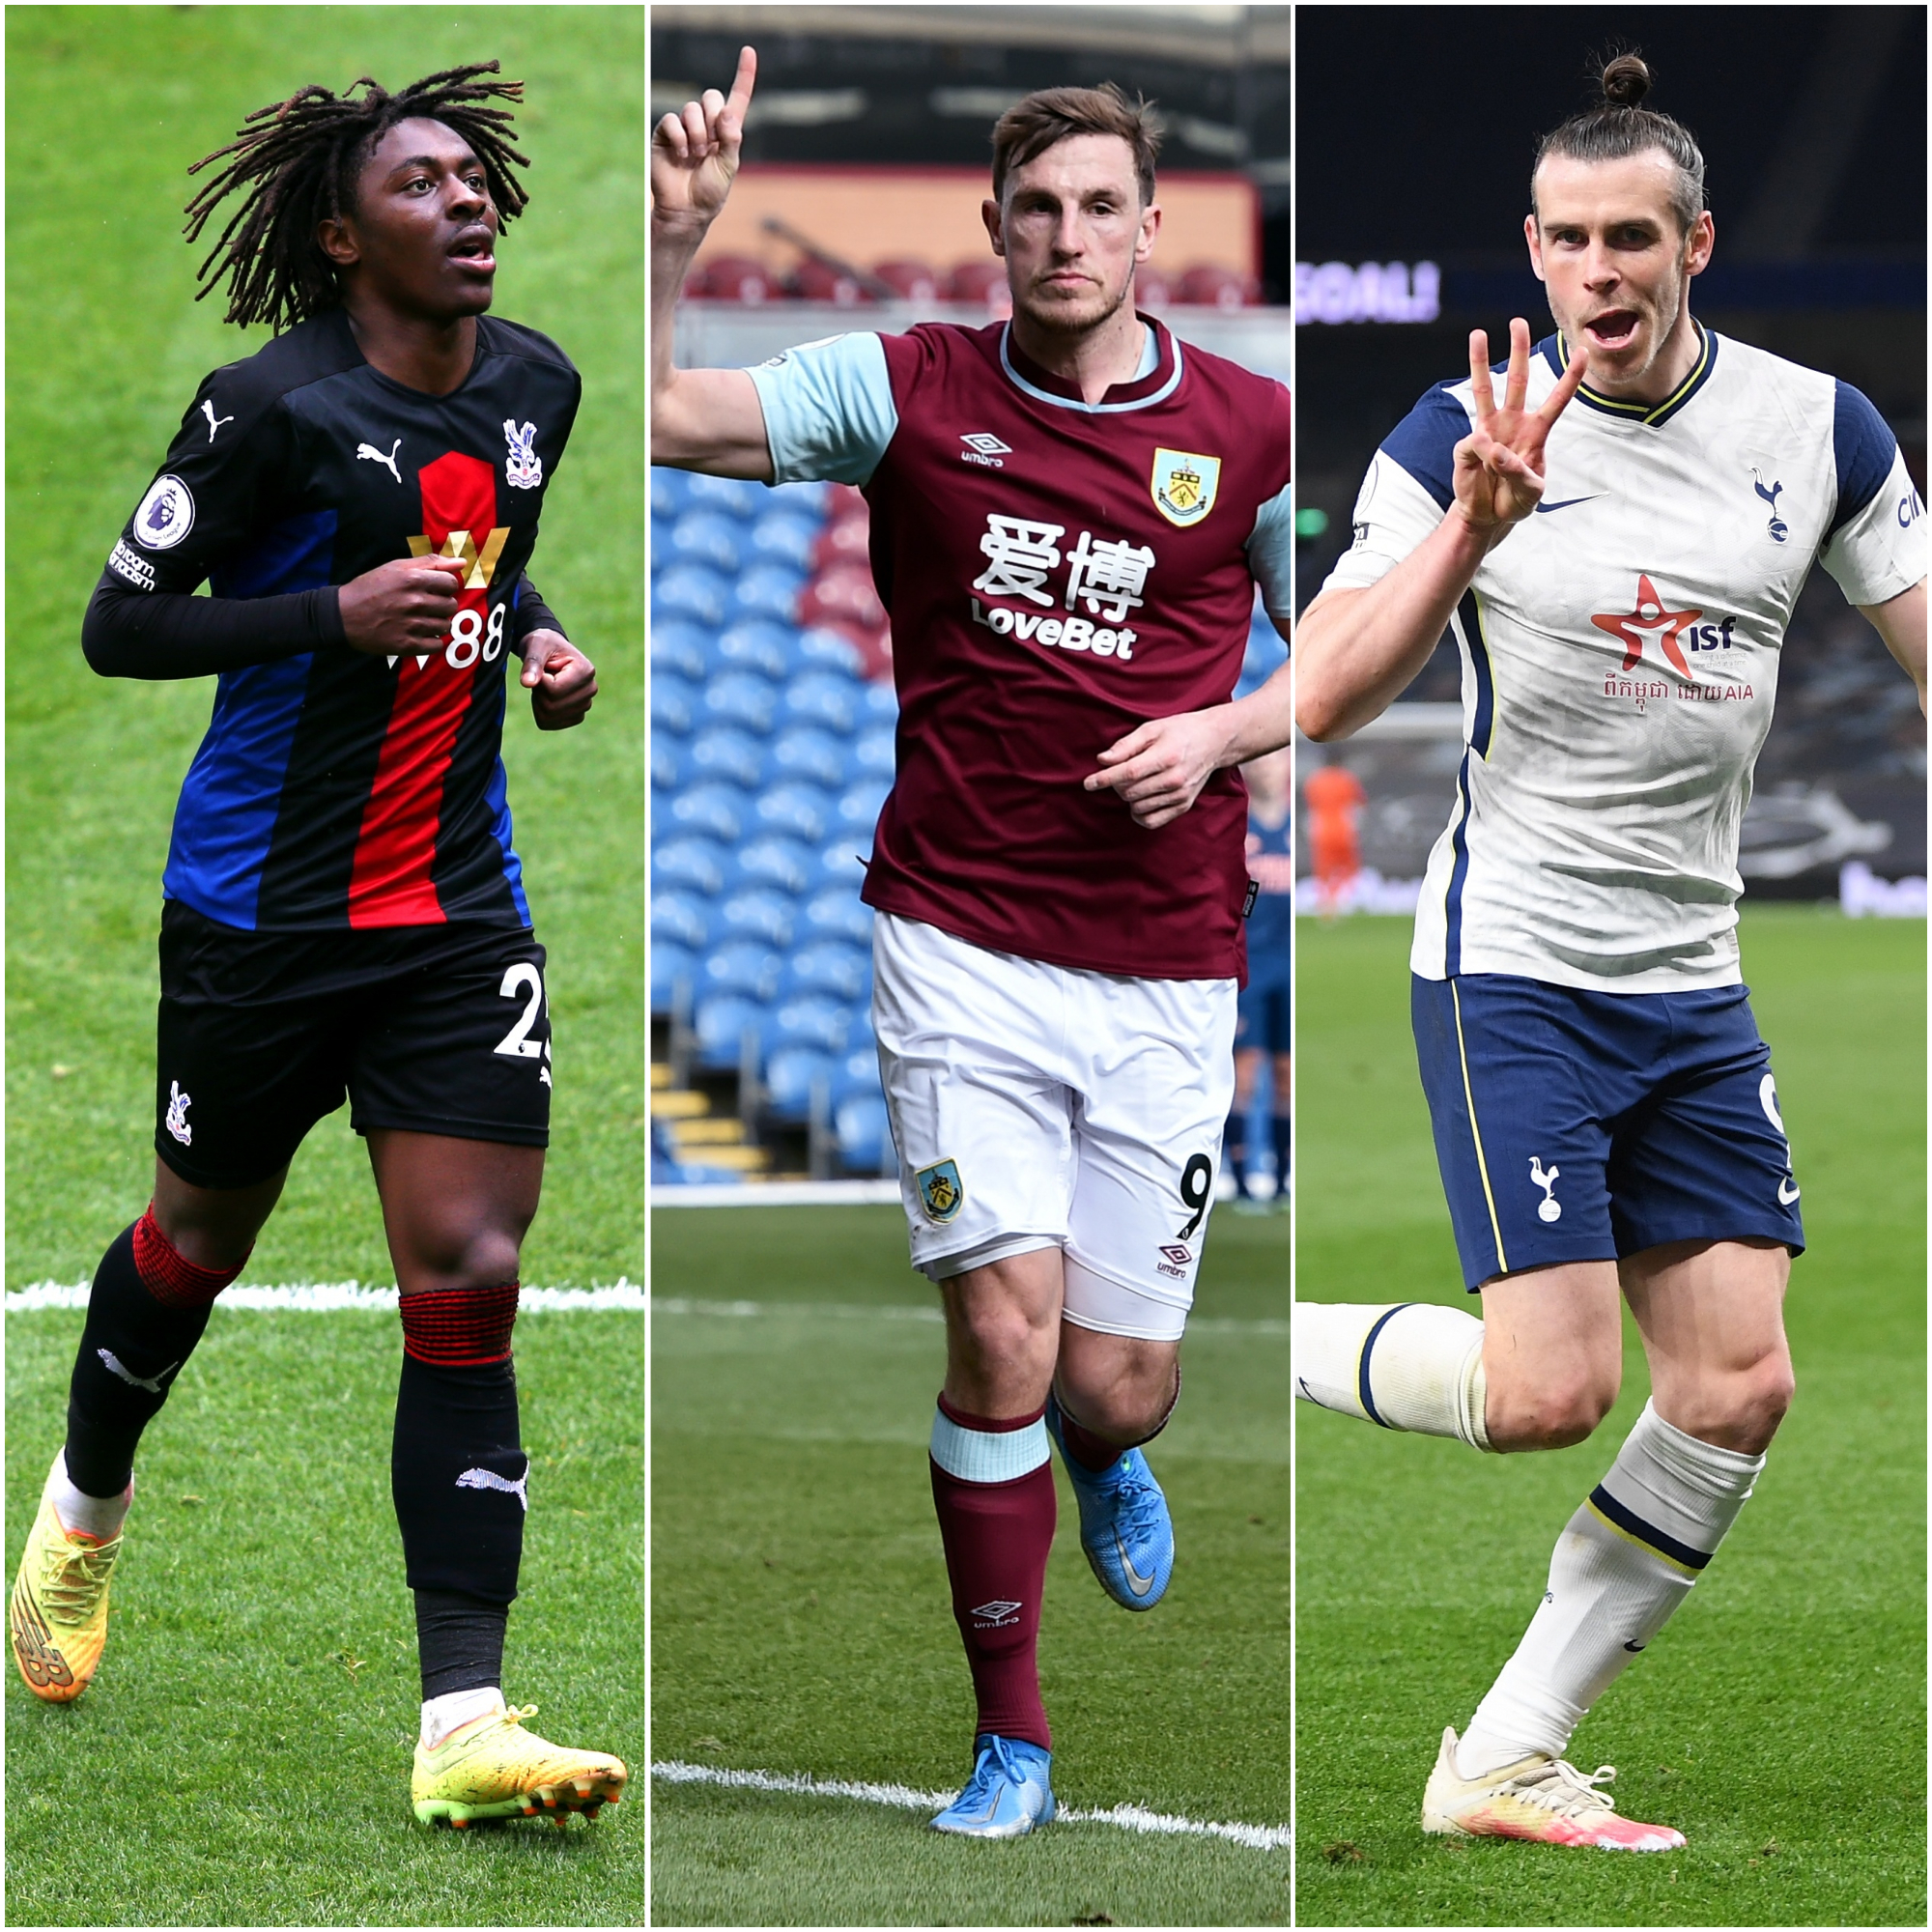 FPL tips: A drop of Claret at the Palace